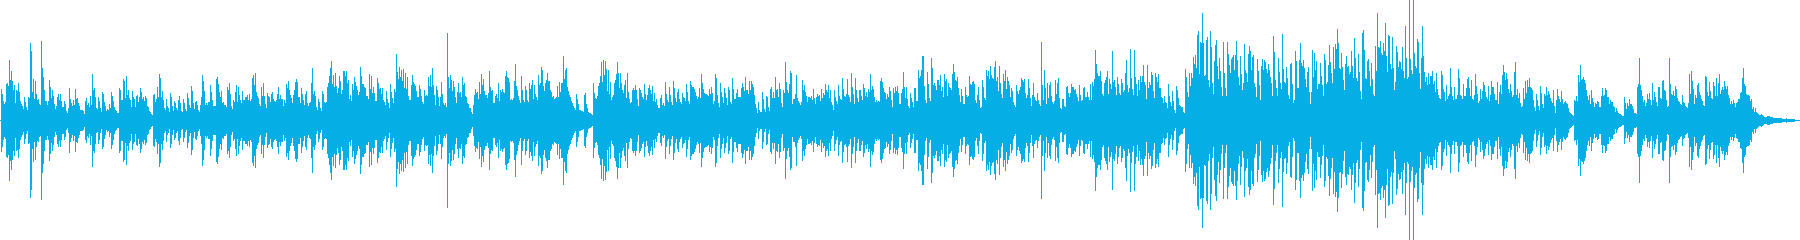 A heartwarming piano in the background of reading's reproduced waveform